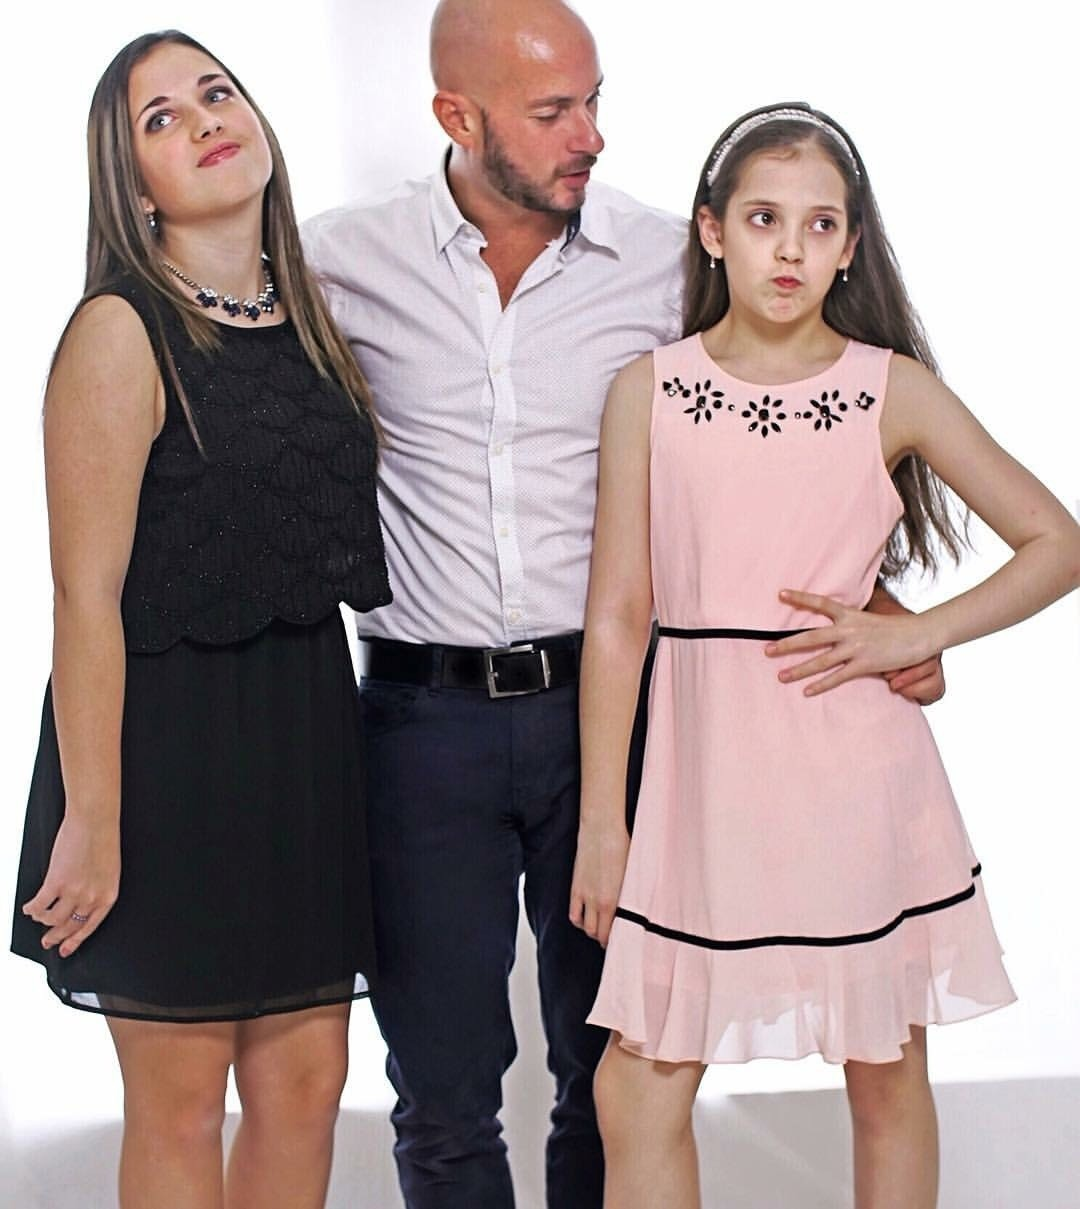 Uncle and nieces